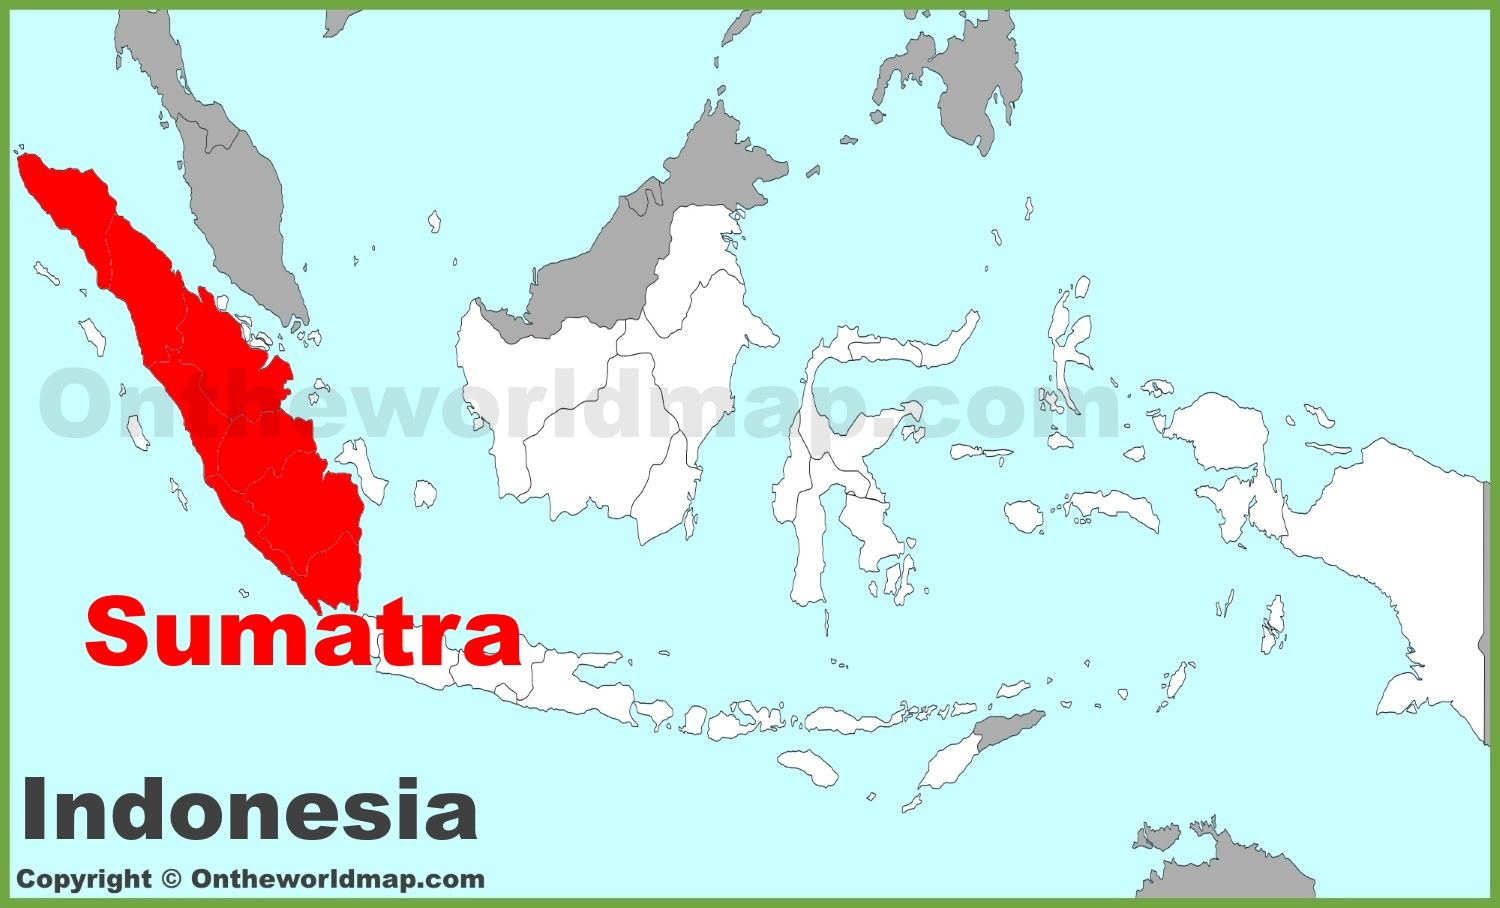 Sumatra location on the Indonesia map